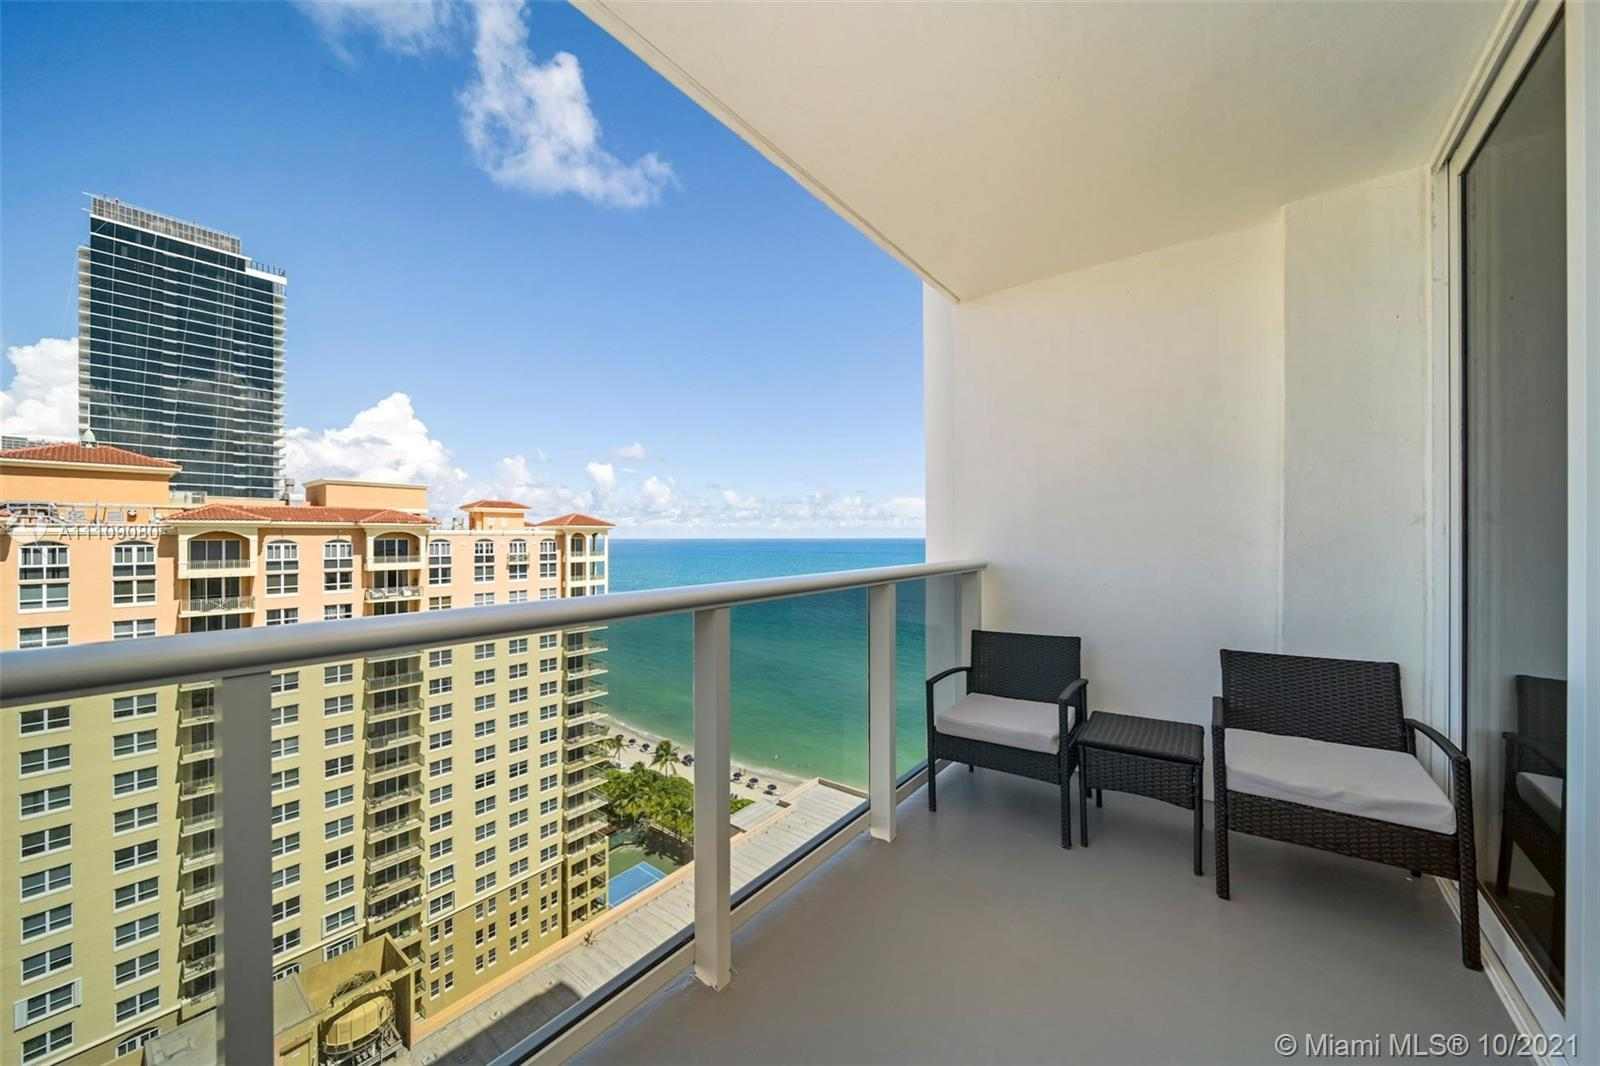 The best apartment in the neighborhood is now for sale in Parker Tower, Hallandale. Come in to enjoy